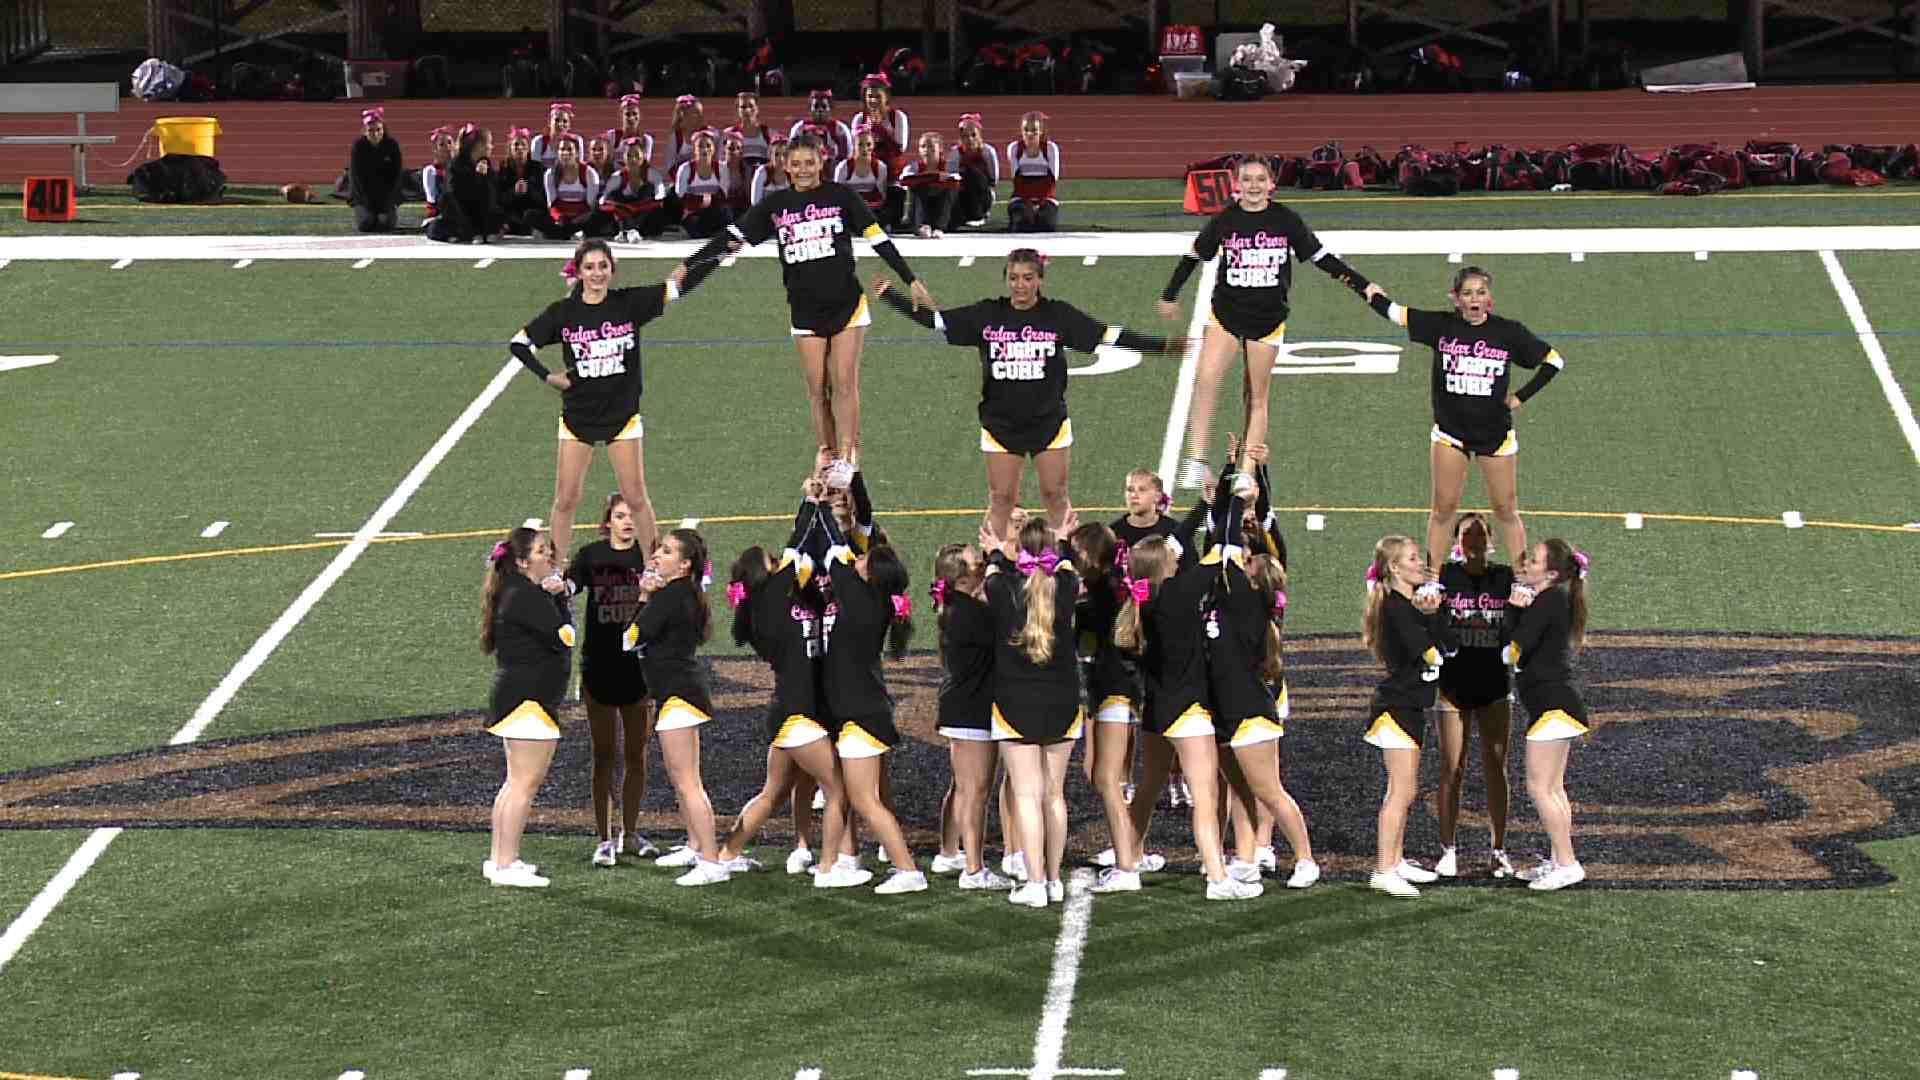 Cheerleading Coverage: Jersey Sports Now